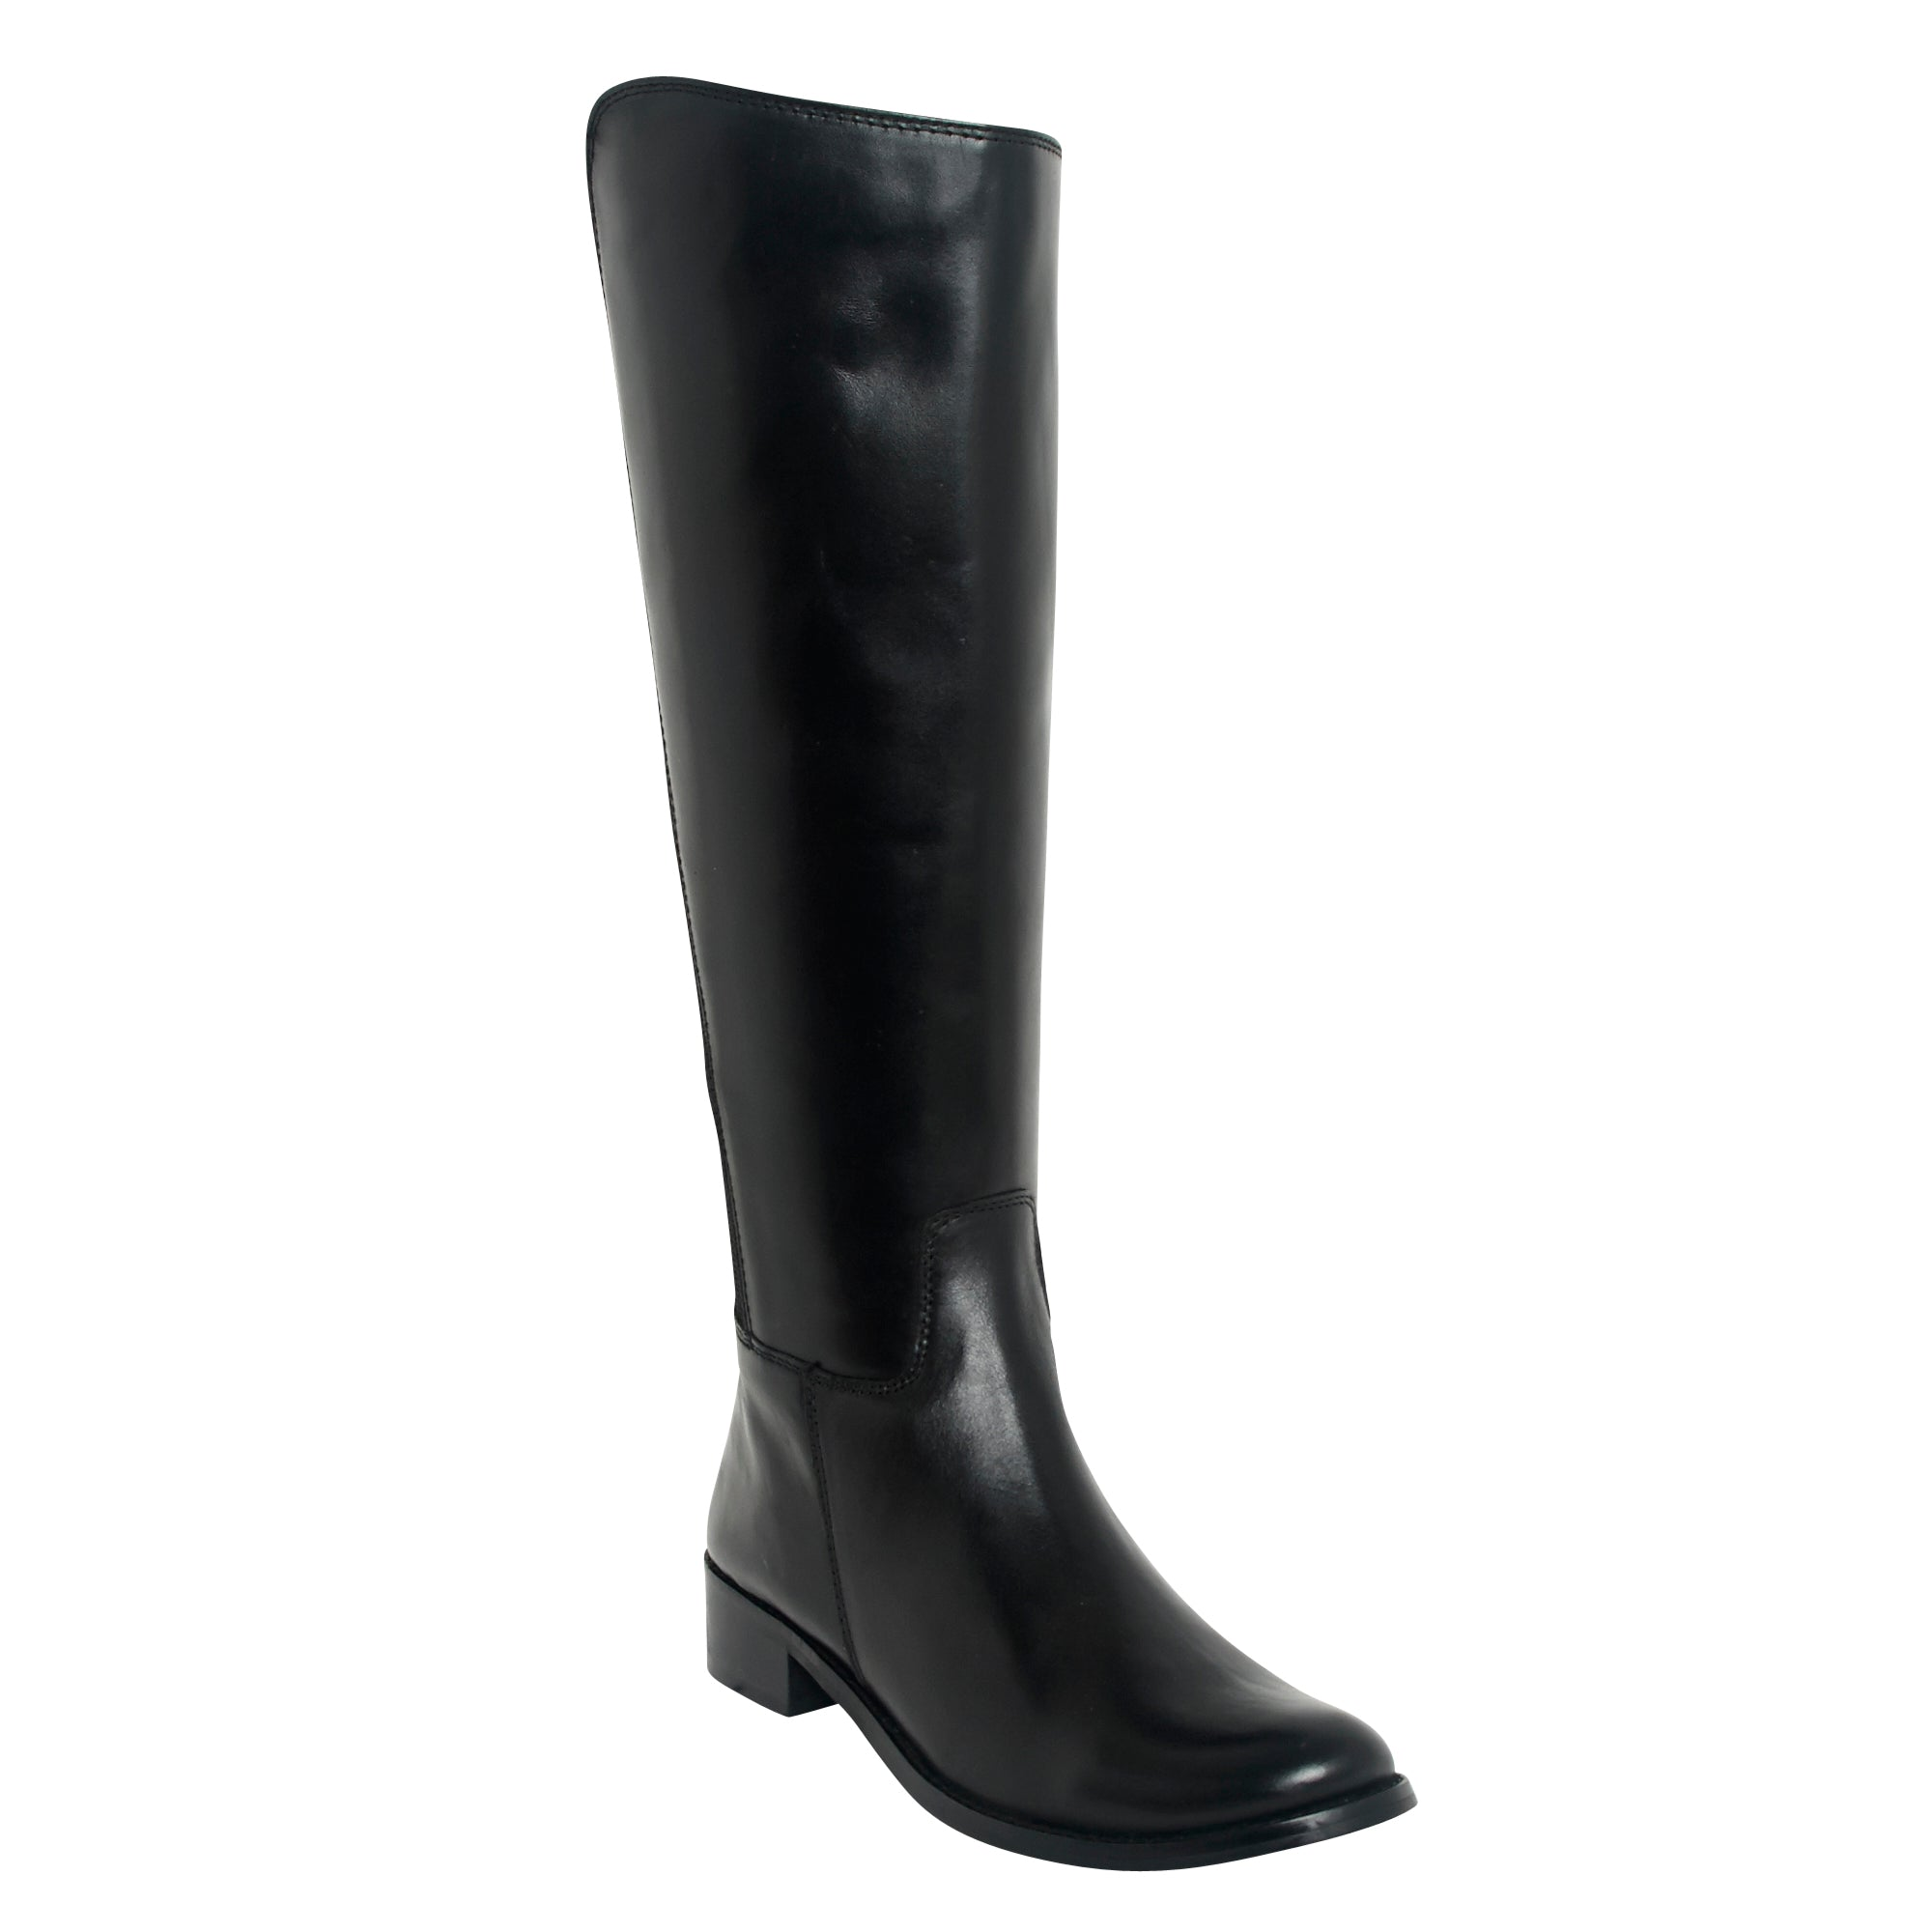 Ladies Long Boots - 32956 Black